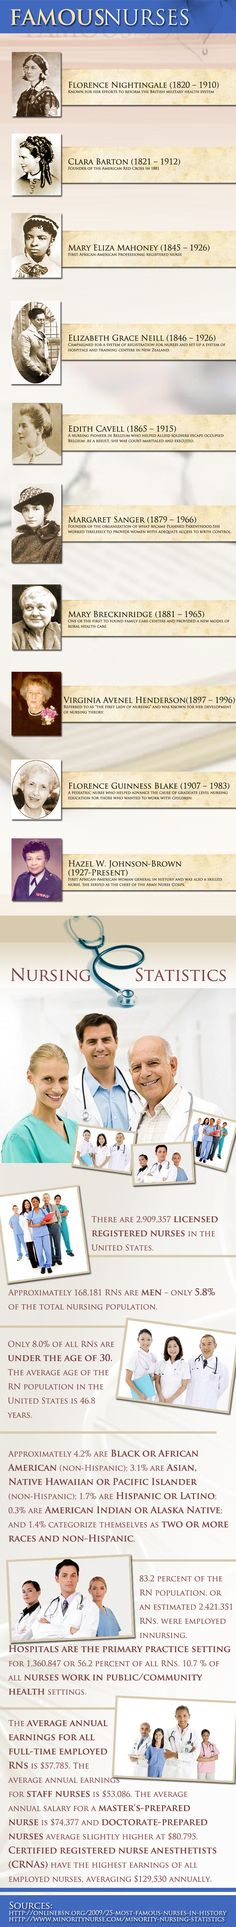 Famous pioneers in the field of nursing, and current statistics. Great health infographic